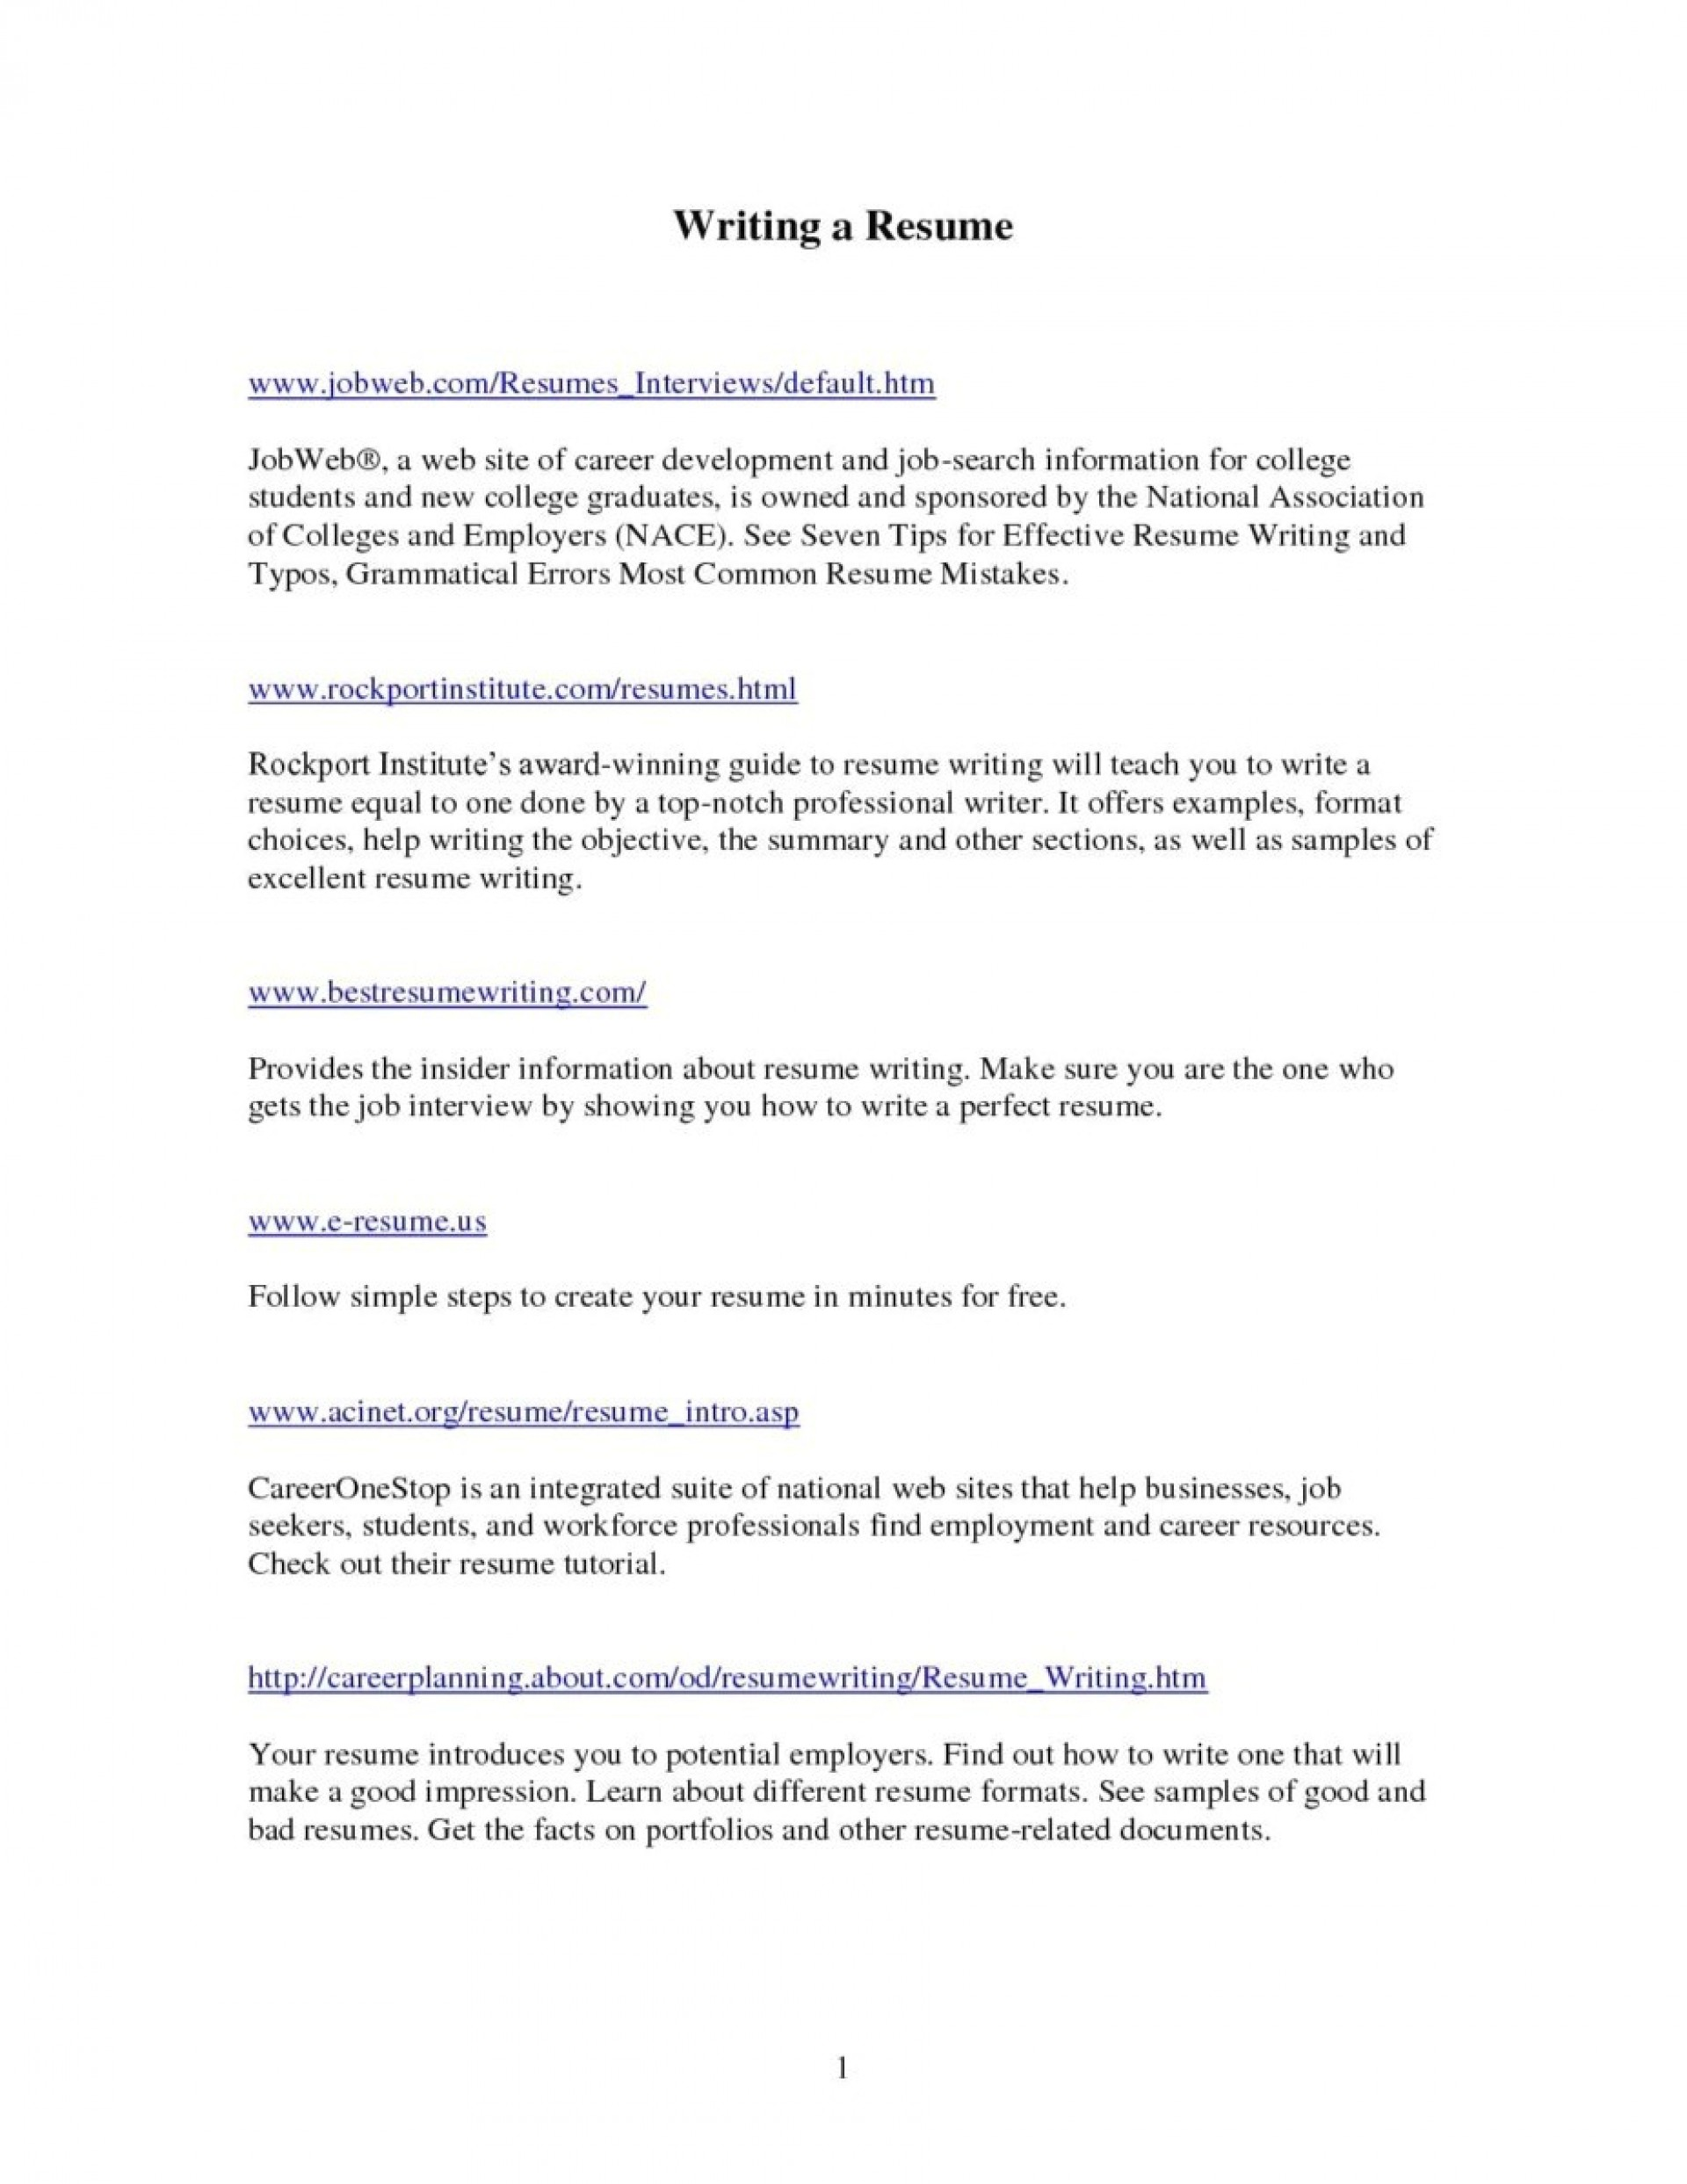 011 Research Paper Resume Writing Service Reviews Format Best Writers Inspirational Help Professional Of Free Services How To Do Wondrous Outline Write A History An For 1920